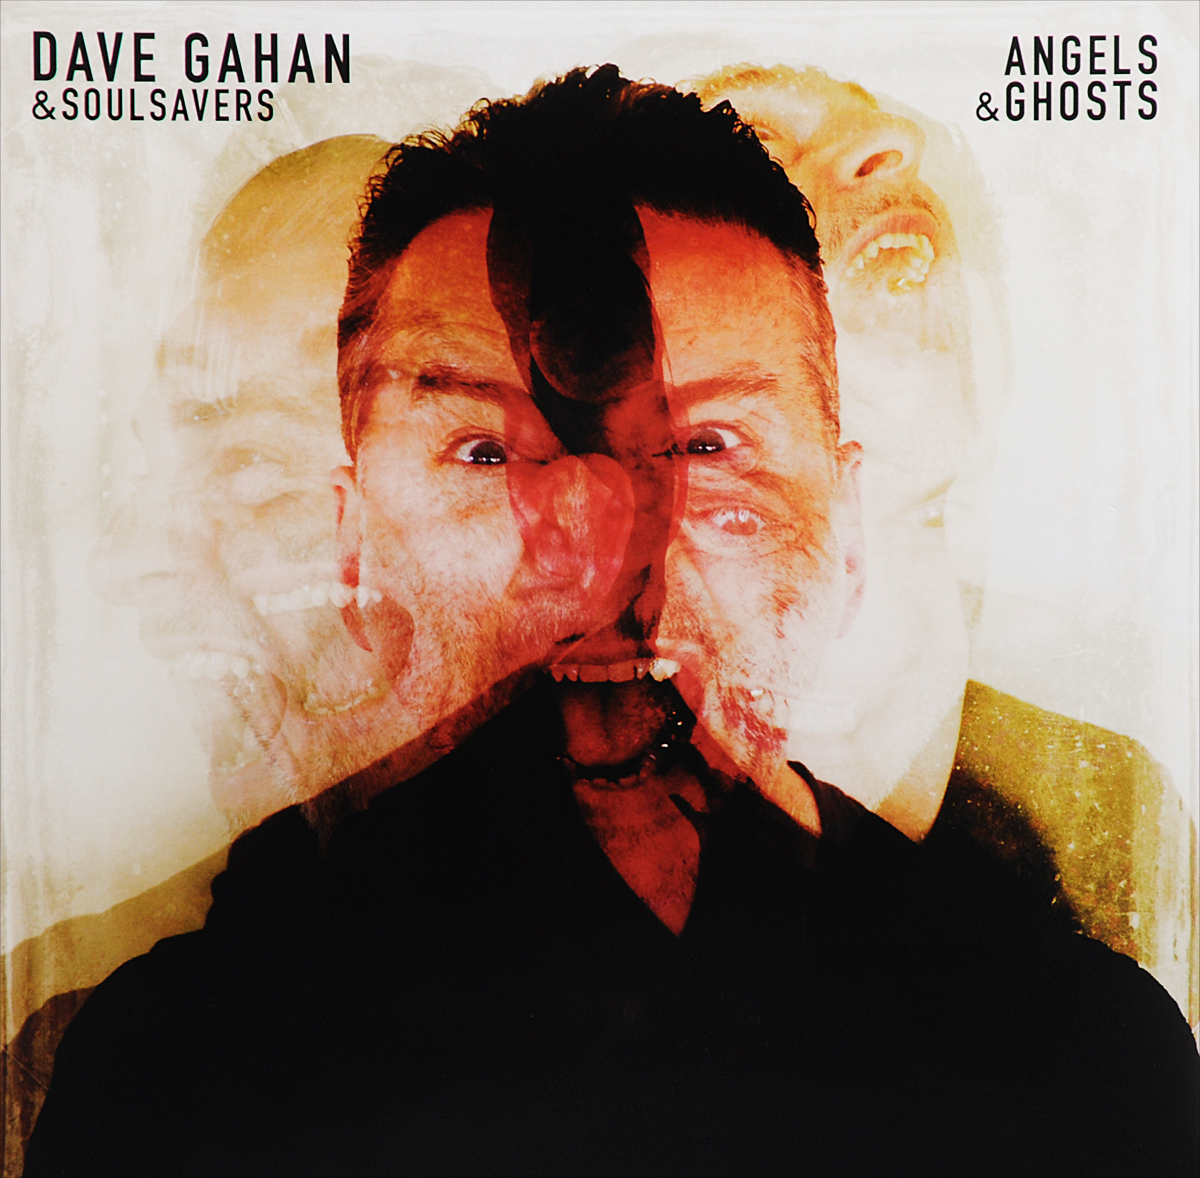 Дэйв Гэхан,Soulsavers Dave Gahan and Soulsavers. Angels & Ghosts (LP) dave brubeck dave brubeck quartet time out time further out 2 lp